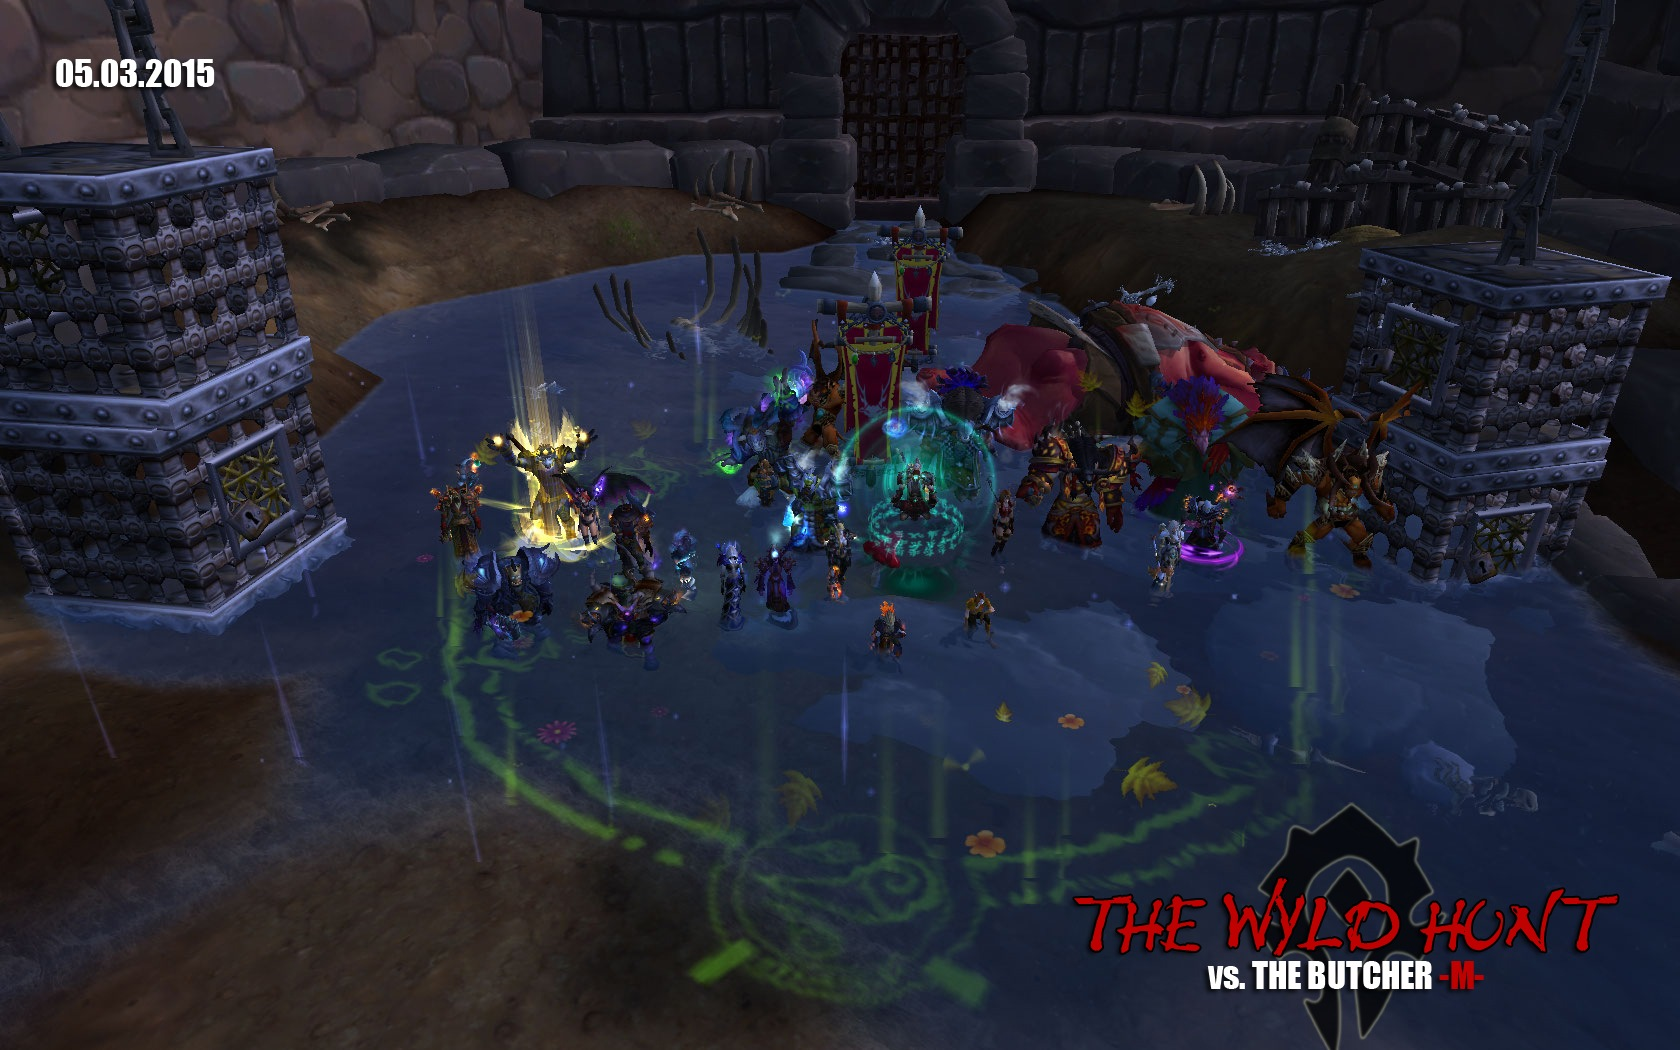 The Butcher Mythic